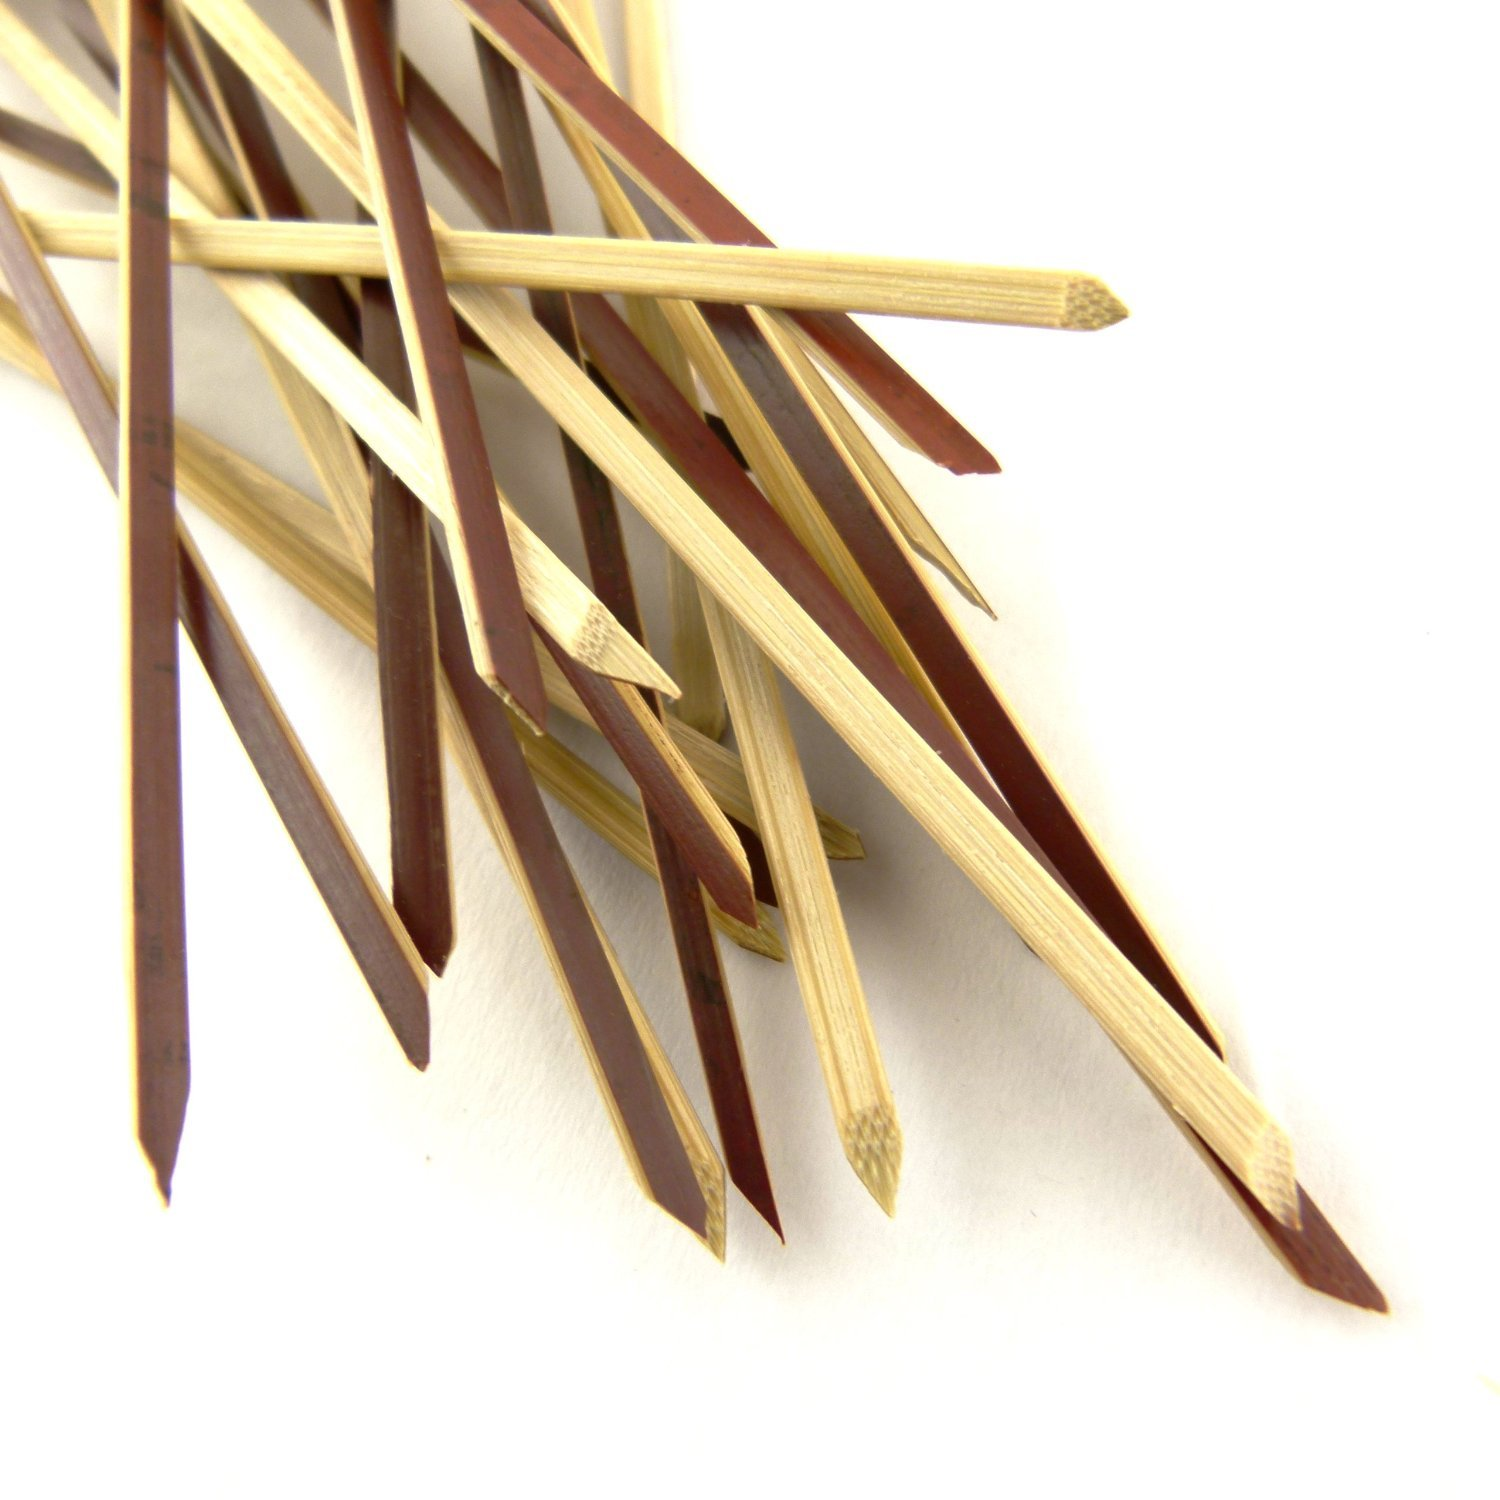 BambooMN 3.14'' Bamboo Tea Knotted Knot Skewers Picks for Cocktails and Hors' D'oeuvres Party Supplies, 1000 Pieces